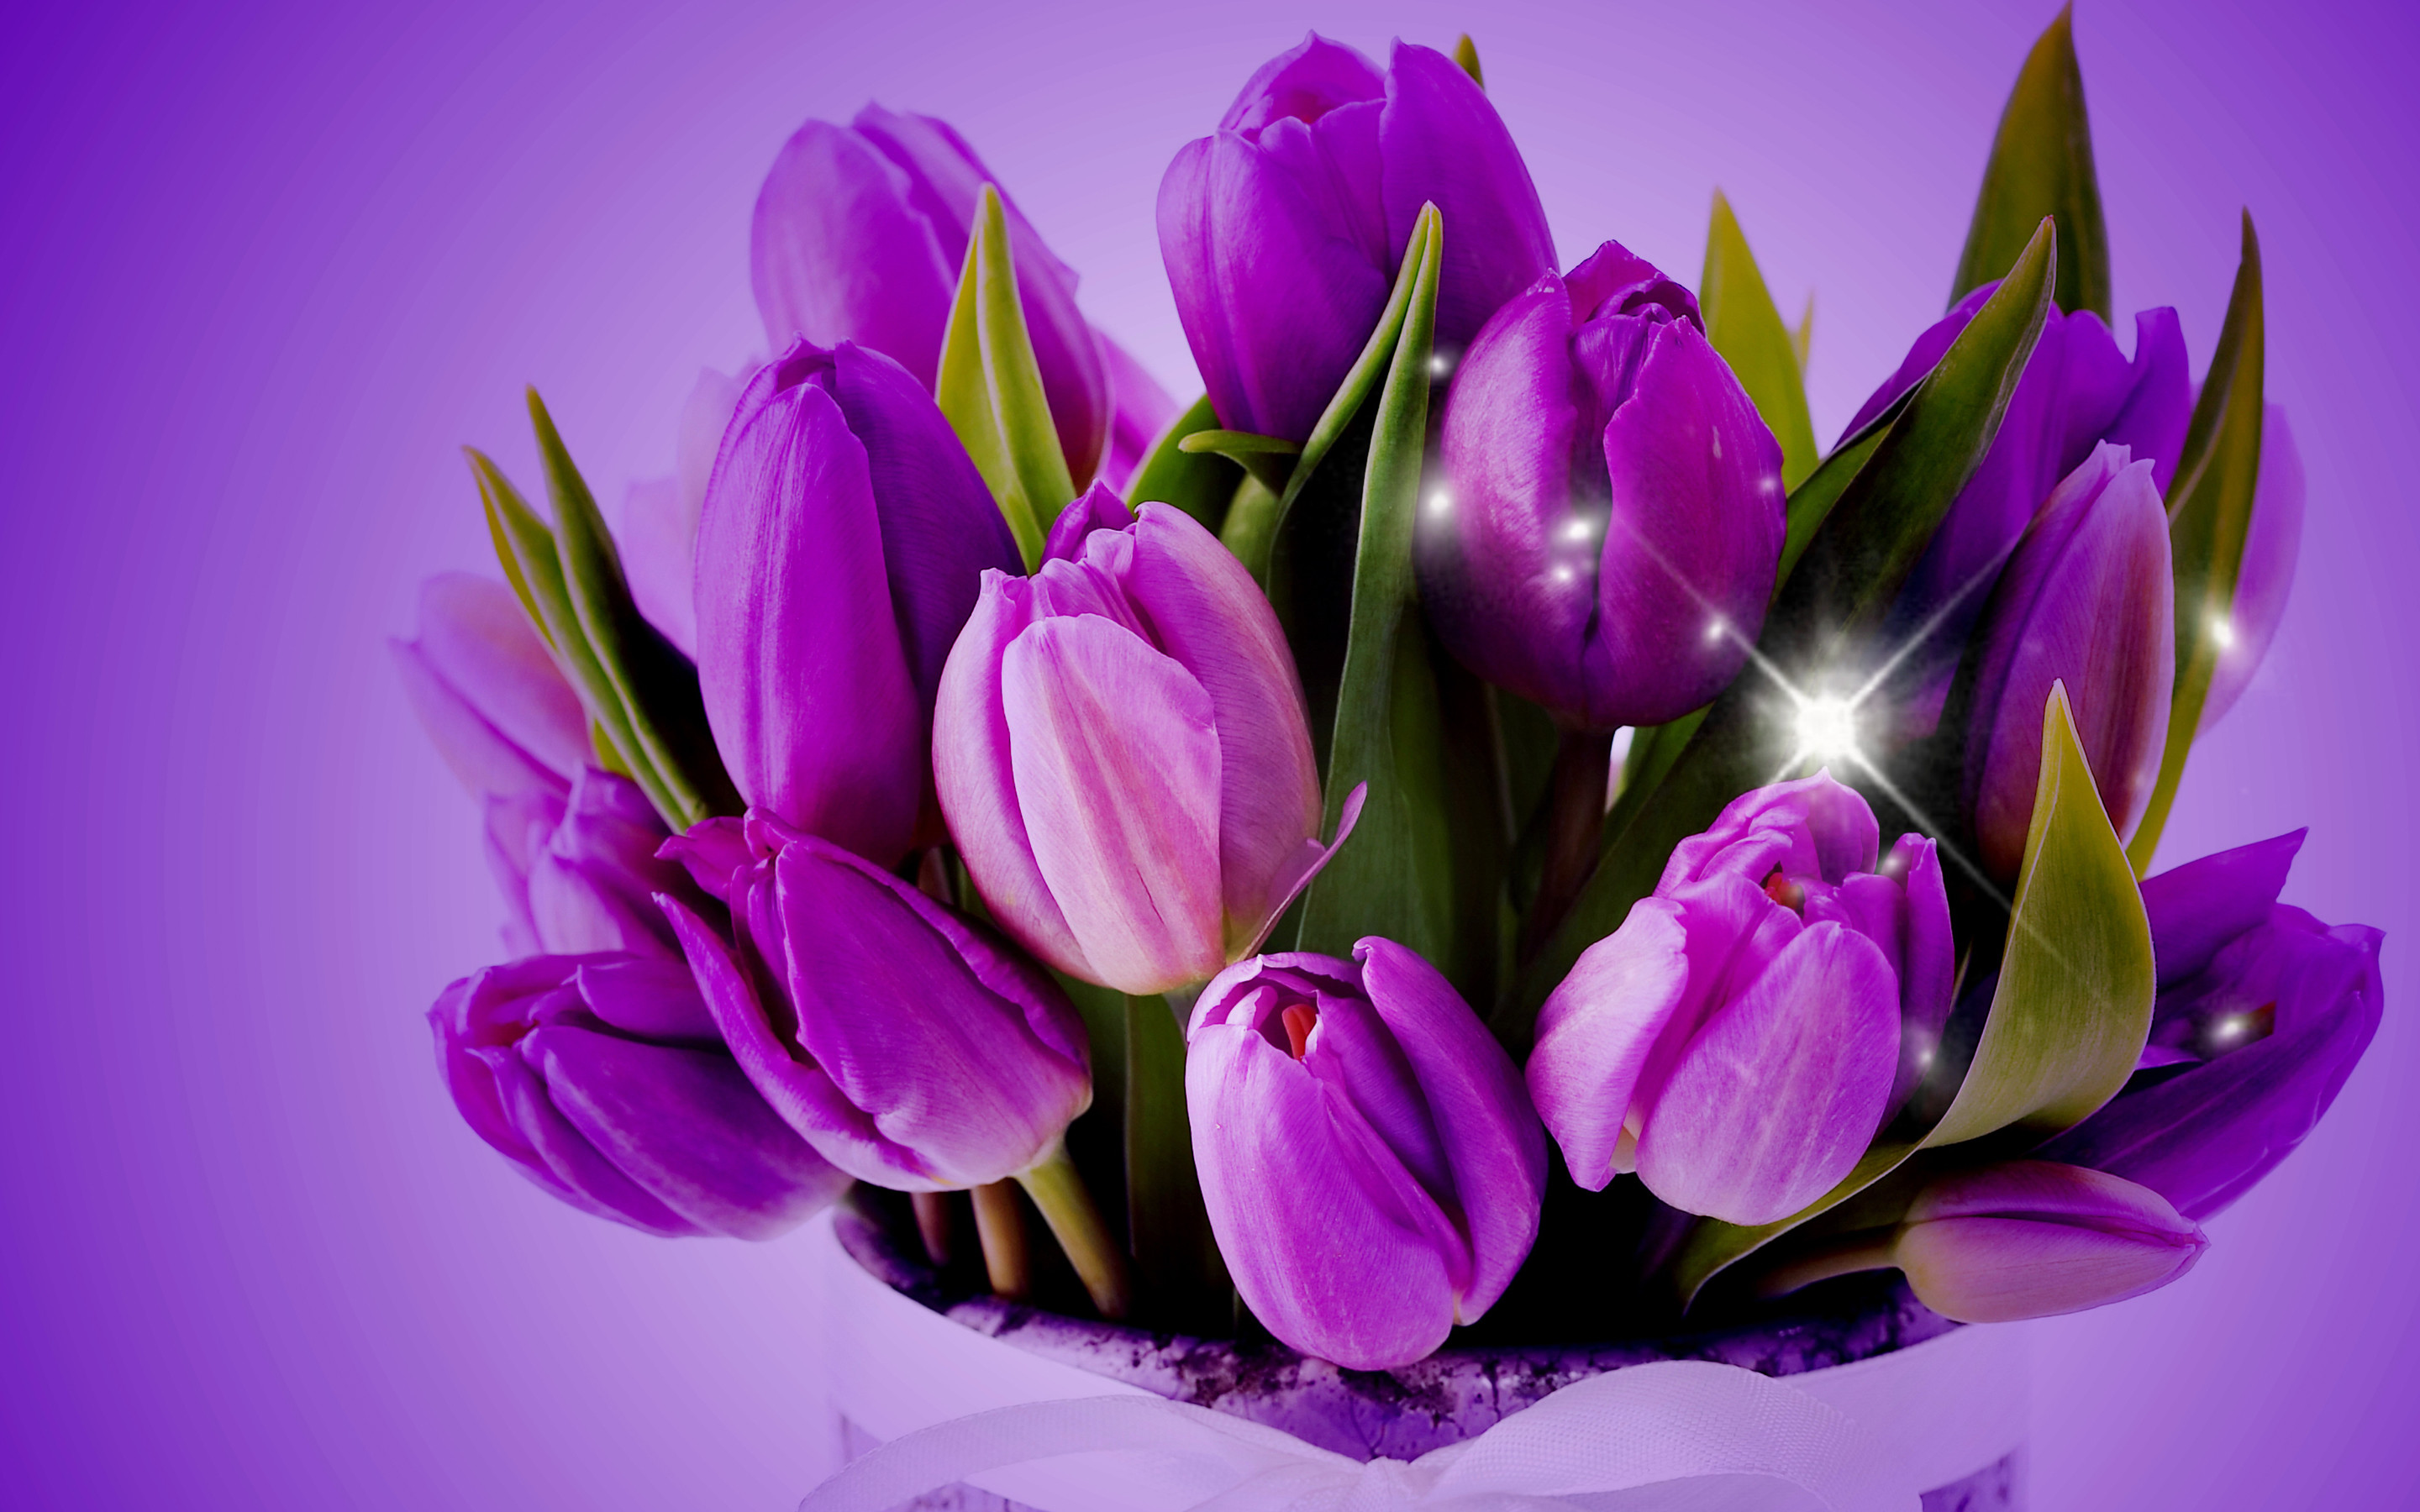 2880x1800 Download Purple Tulips HD Desktop Wallpapers. We select the best .